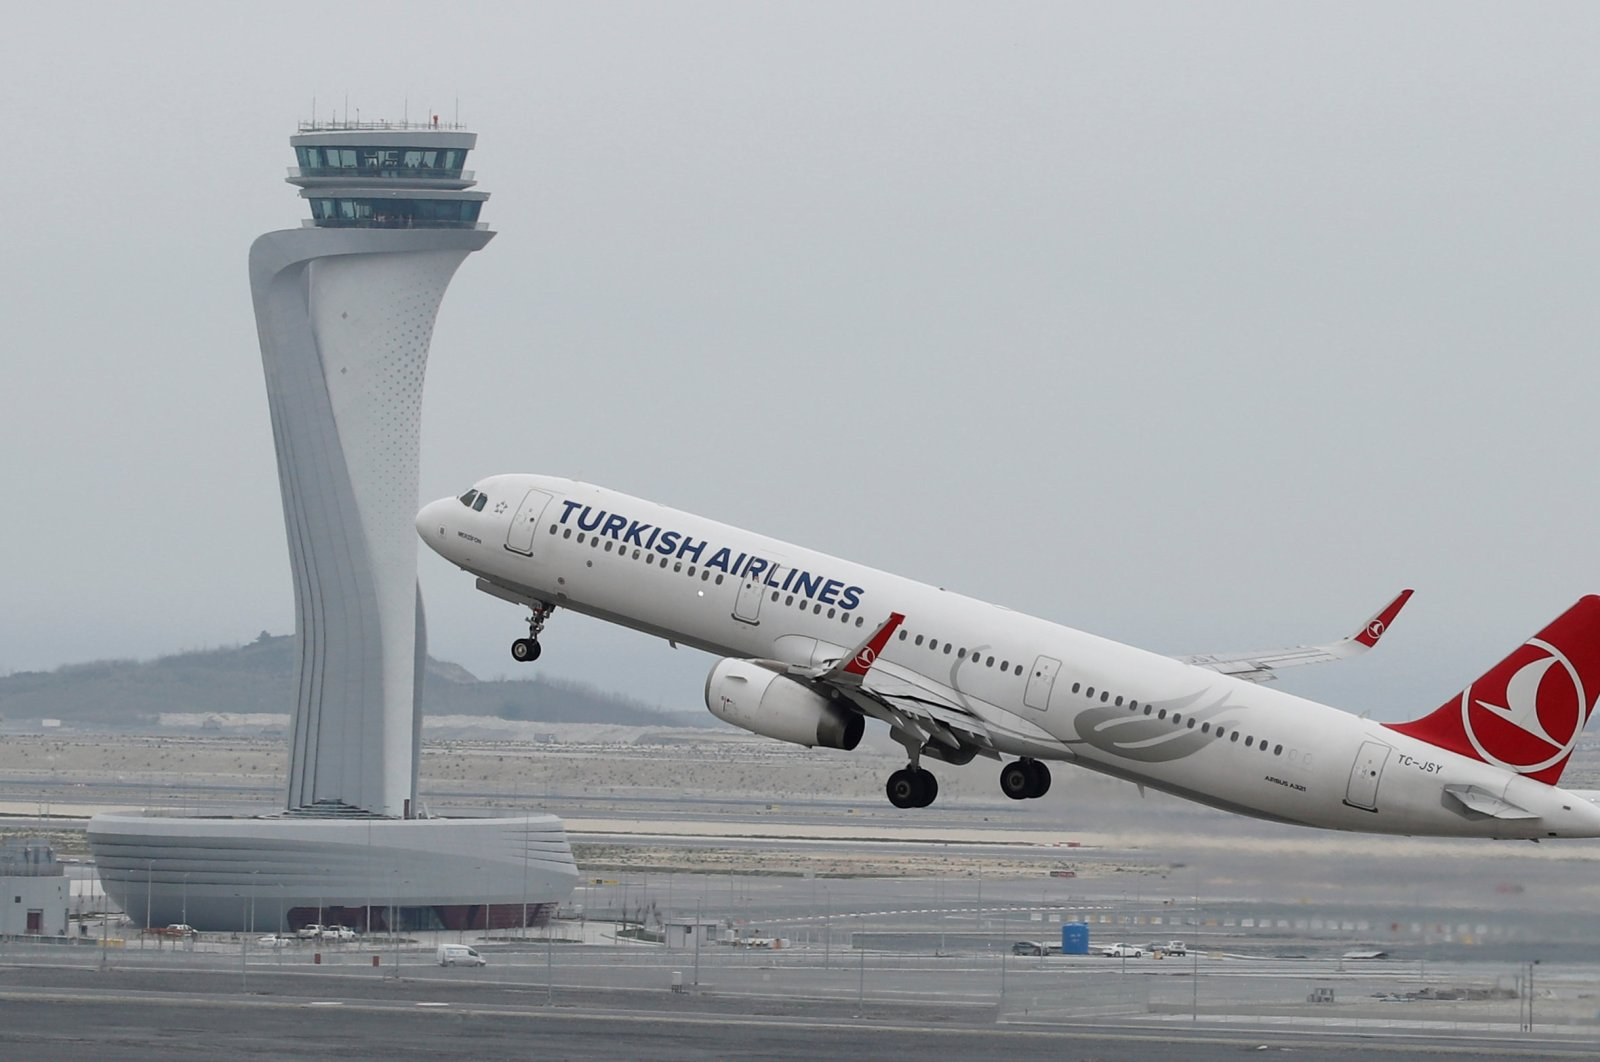 A Turkish Airlines Airbus A321-200 plane takes off from the city's new Istanbul Airport in Istanbul, Turkey, April 6, 2019. (Reuters Photo)